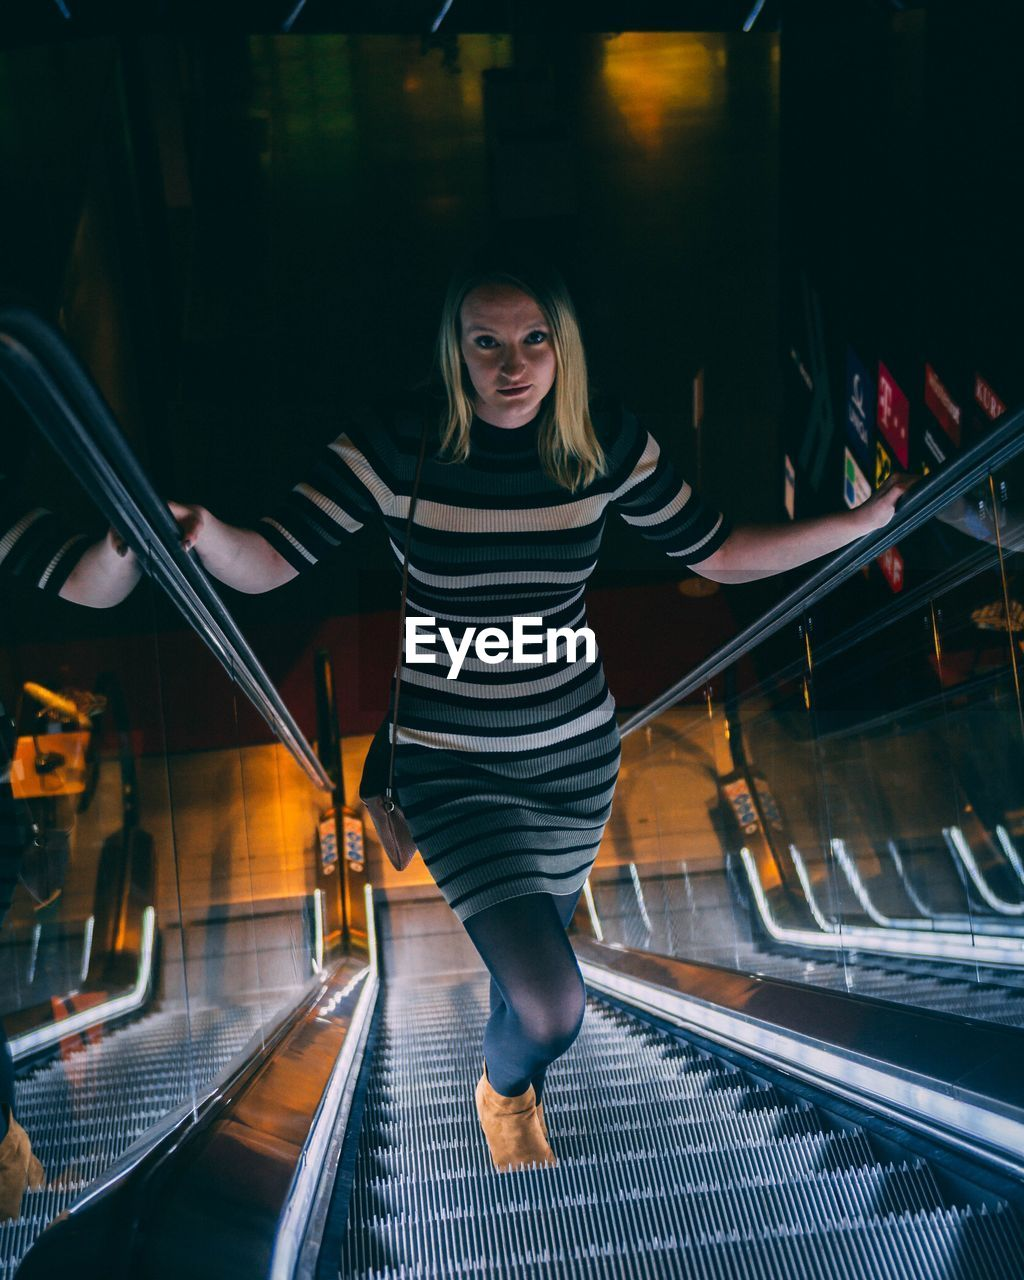 Full Length Portrait Of Young Woman Standing On Escalator